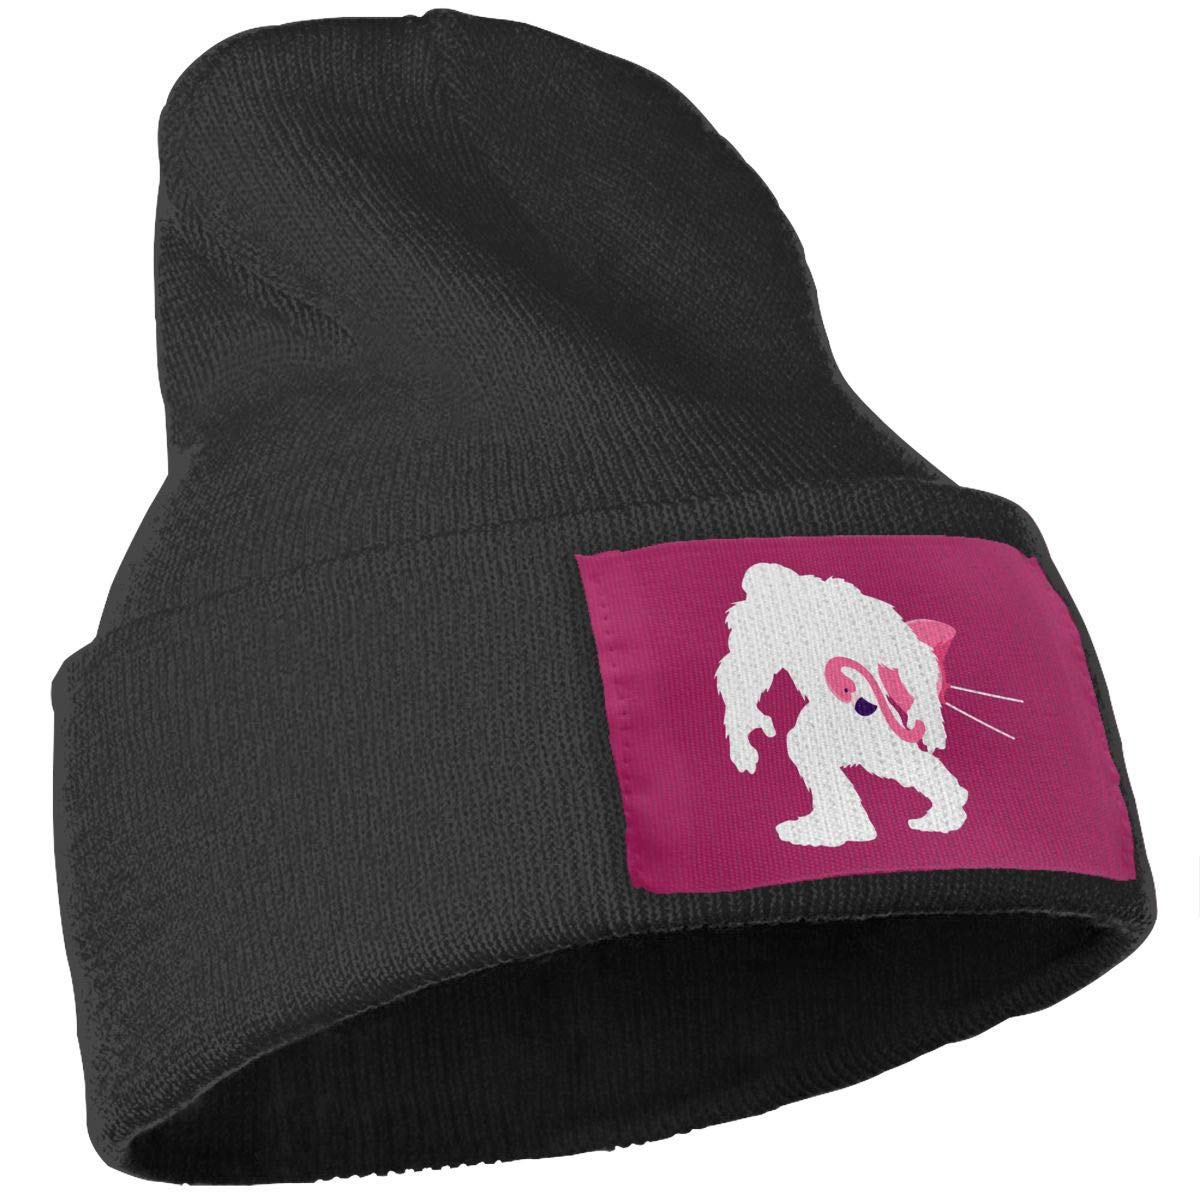 Bigfoot and Lawn Flamingo Winter Knitted Caps for Women Men Soft Warm Knit Hat